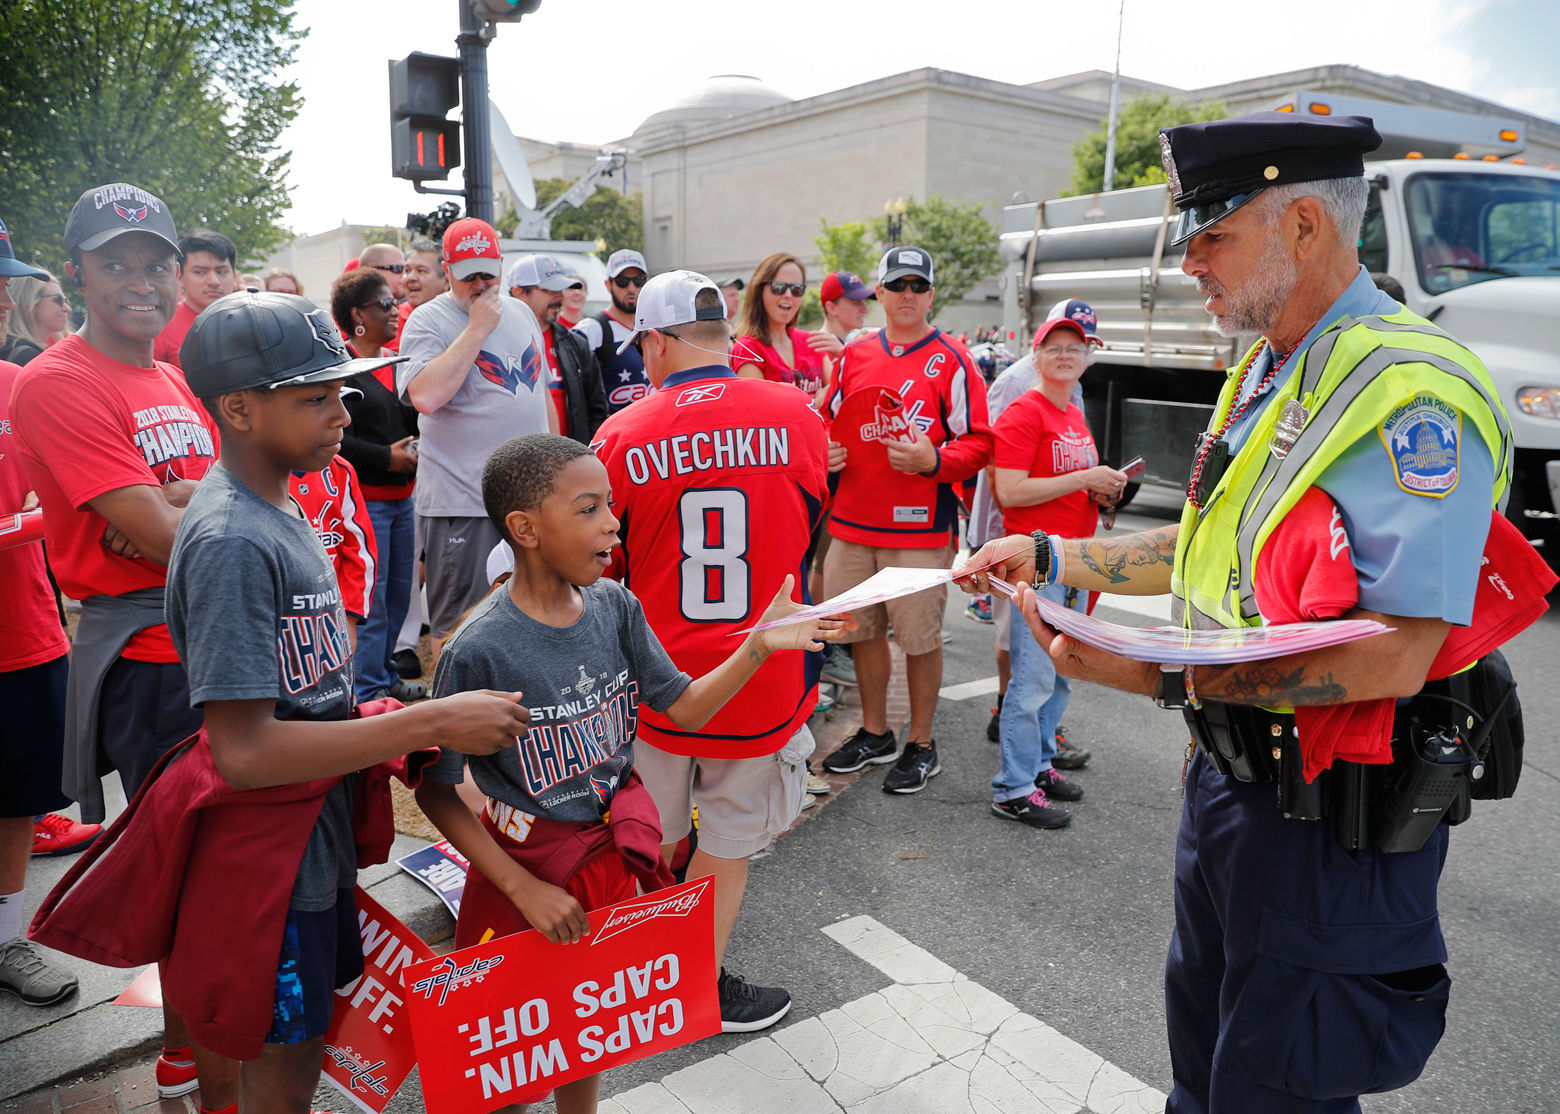 Washington Metropolitan Police Officer Robert T. Fennell, right, helps hand out posters to a pair of young fans before the start the Stanley Cup victory parade on Constitution Ave., along the National Mall. (AP Photo/Pablo Martinez Monsivais)